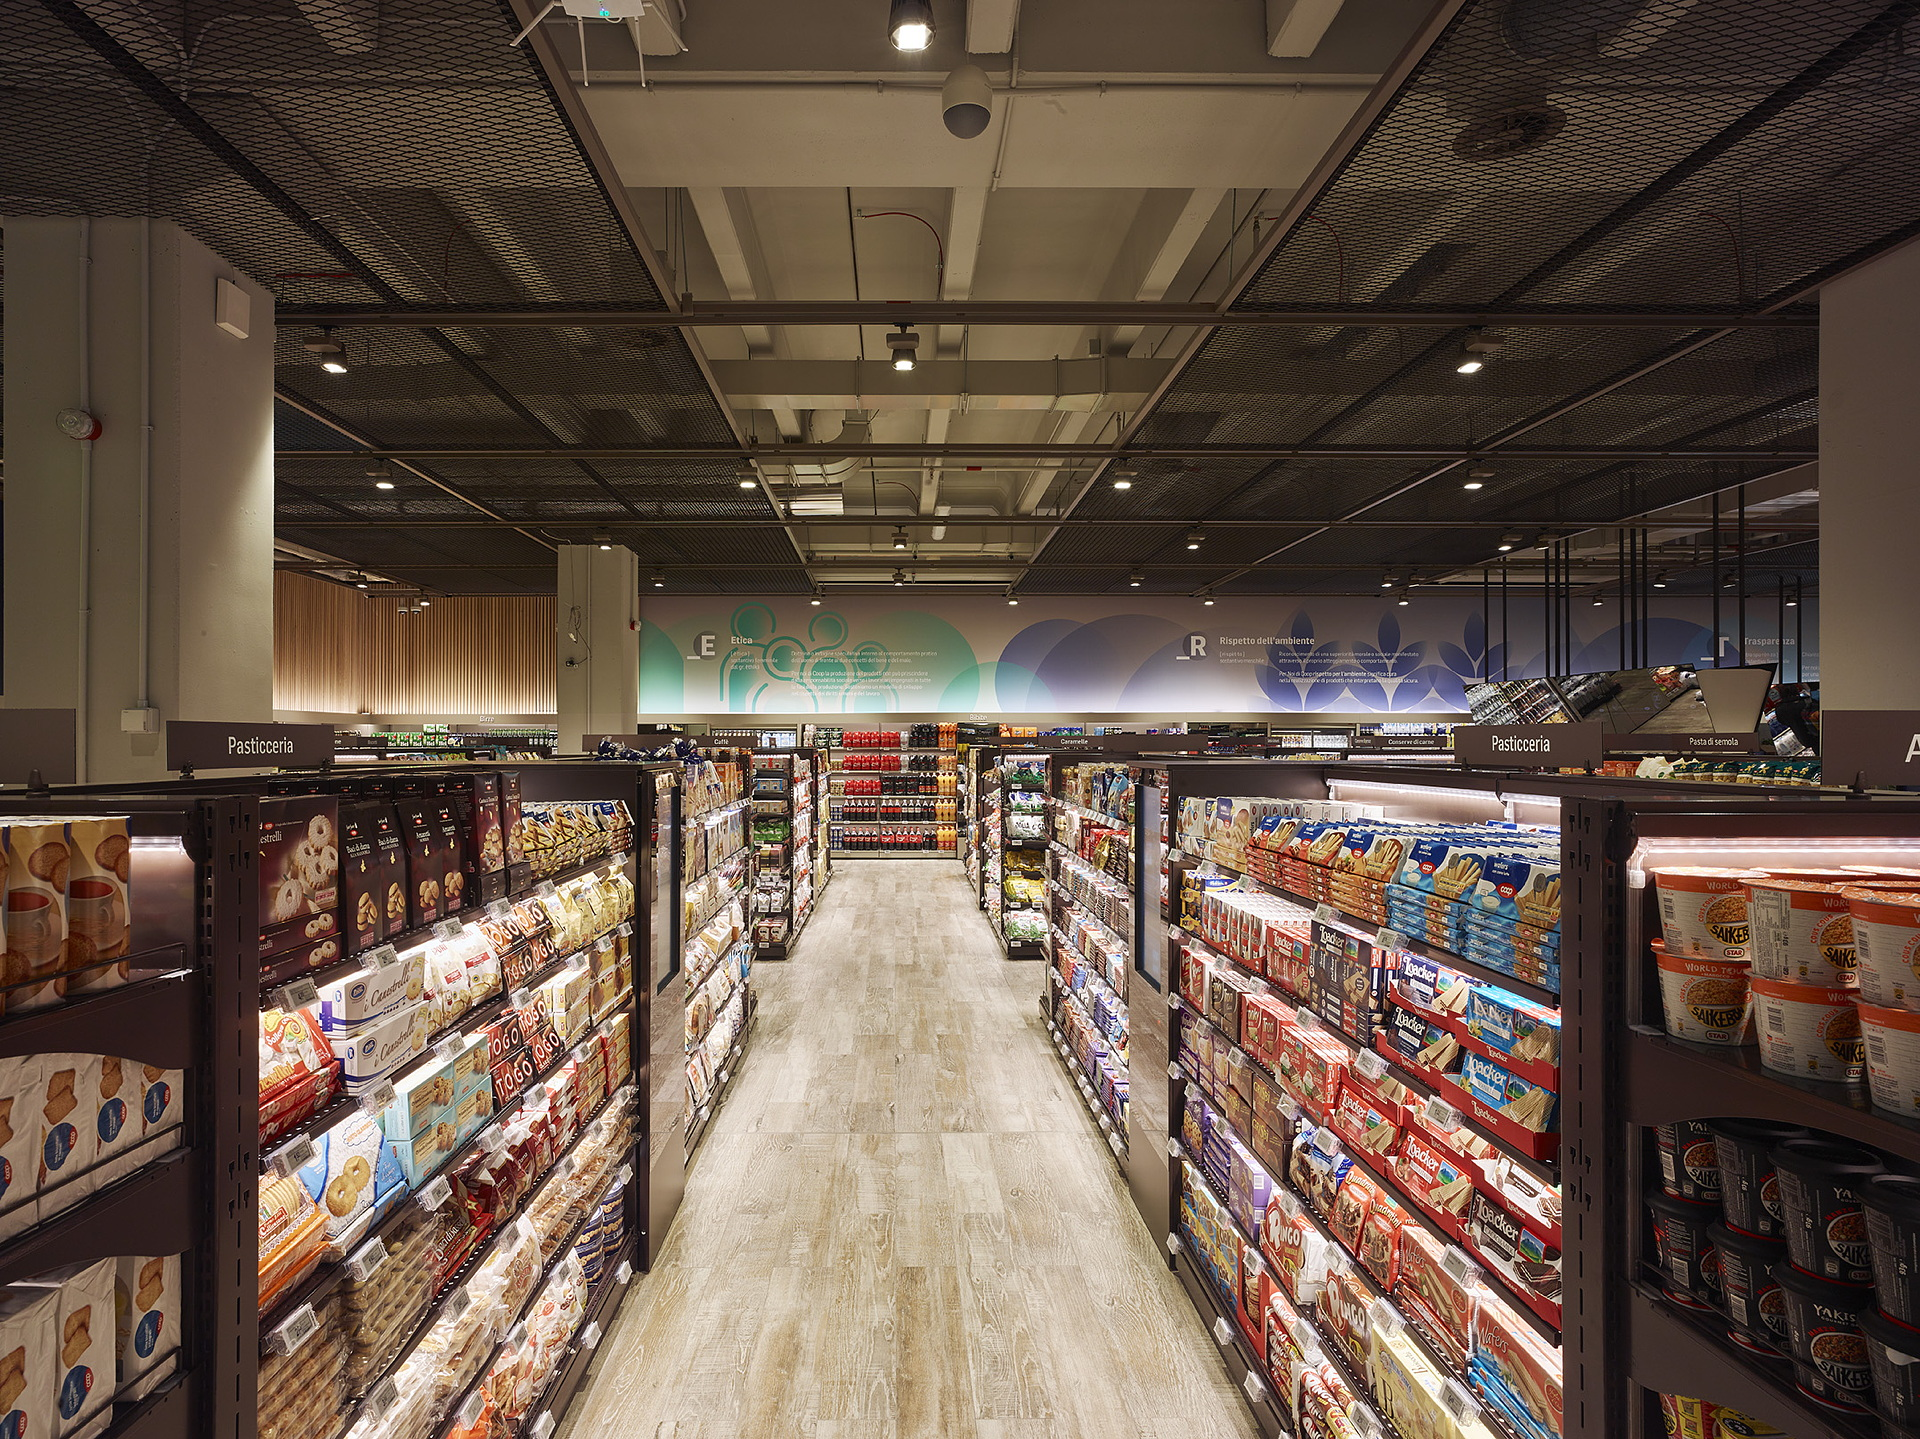 Area 17 INRES Carlo Ratti Supermarket of the future